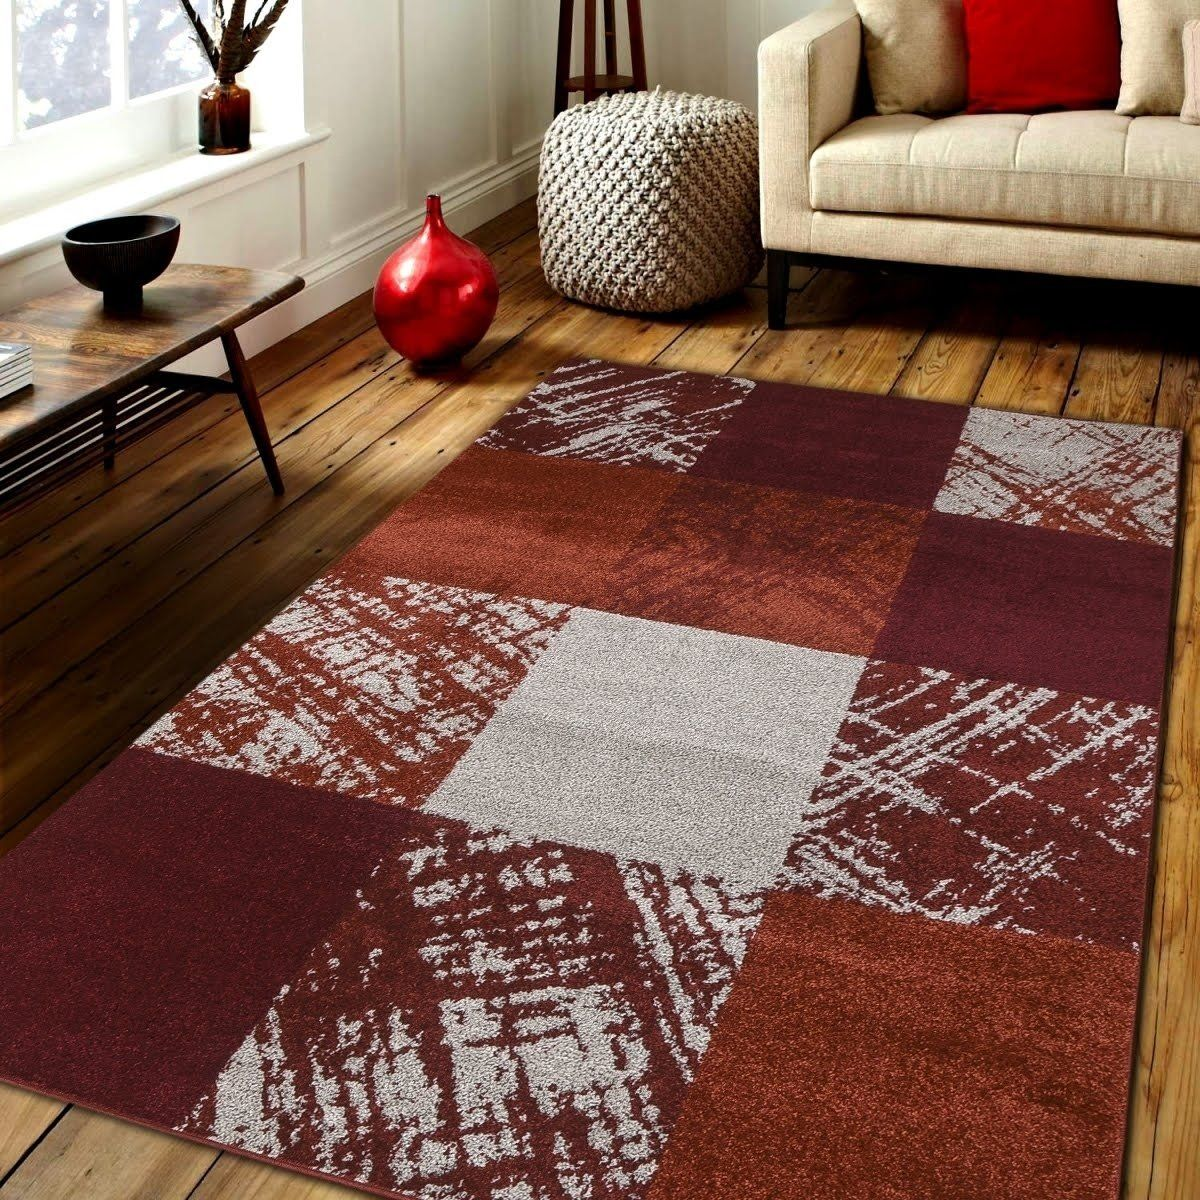 Caramel Drizzle Area Rug Mnc 600 Red 8 X 10 8 X 10 Red 8